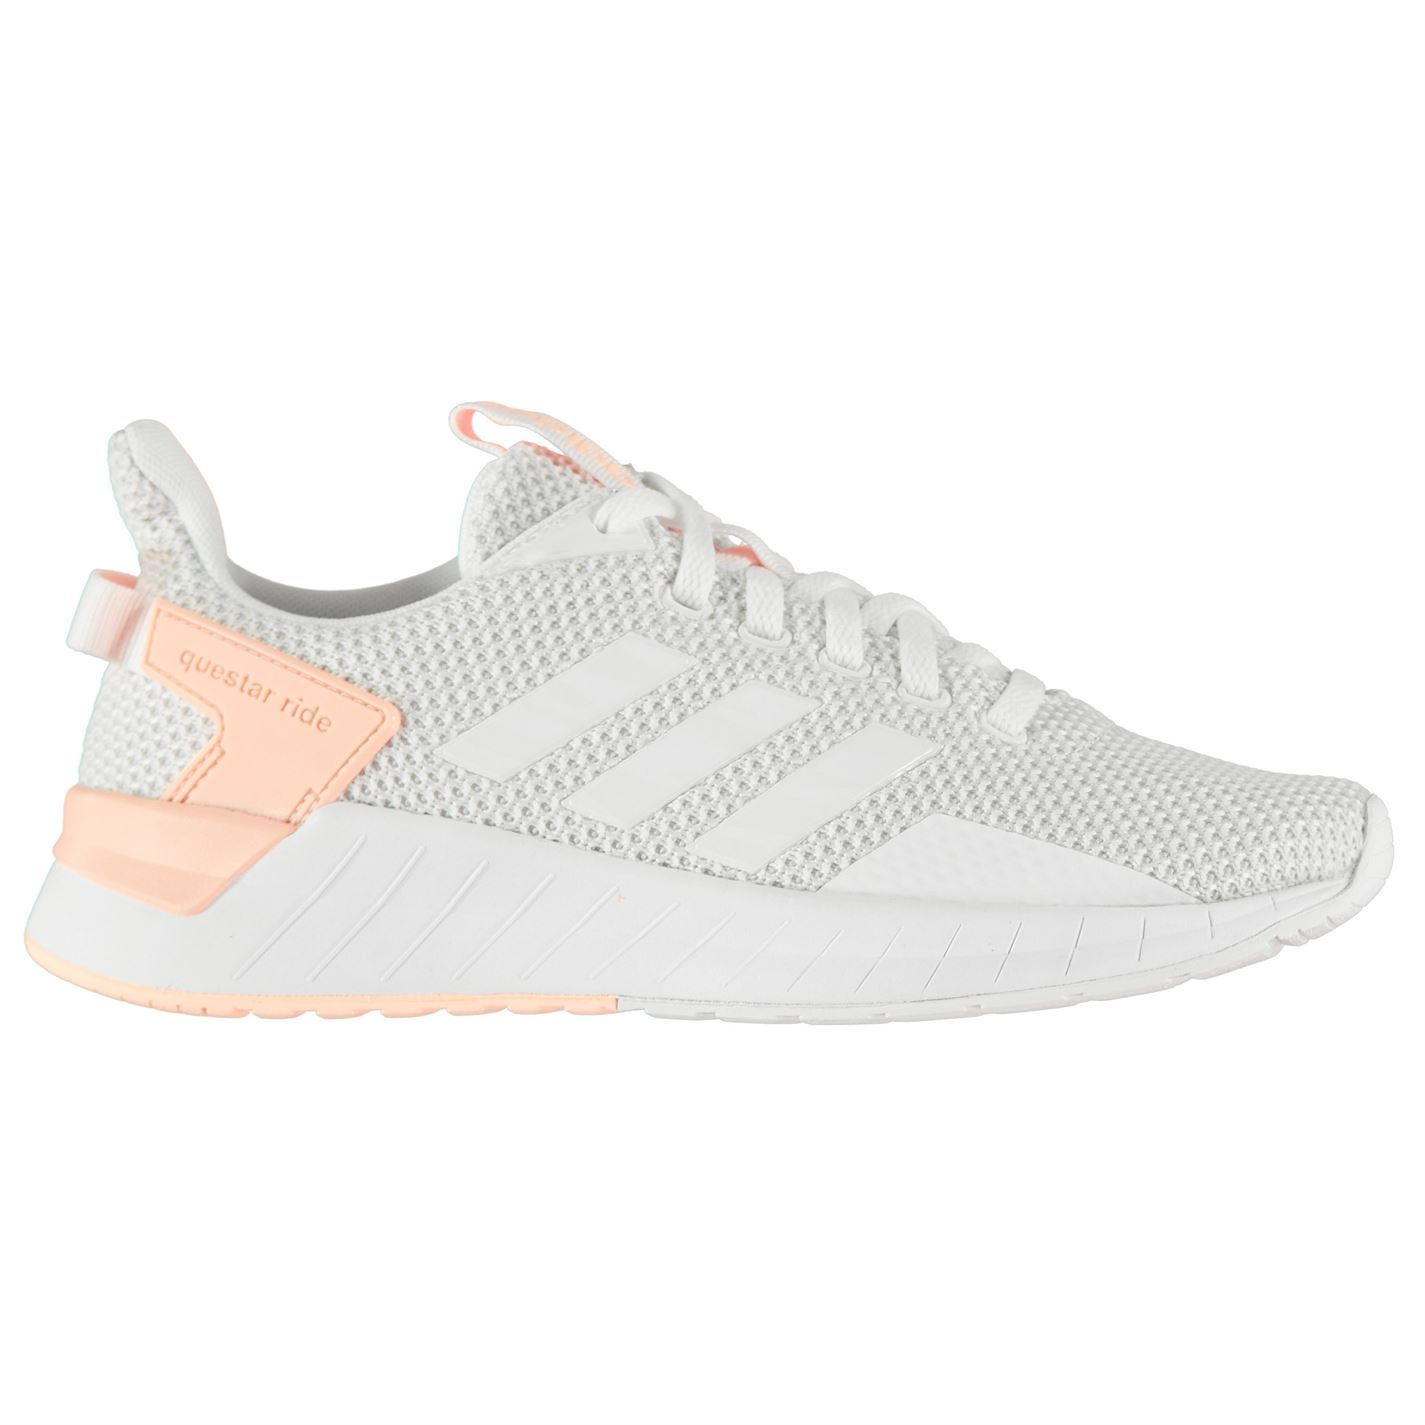 5ccd71c1228 ... adidas Questar Ride Running Shoes Womens White Coral Jogging Trainers  Sneakers ...